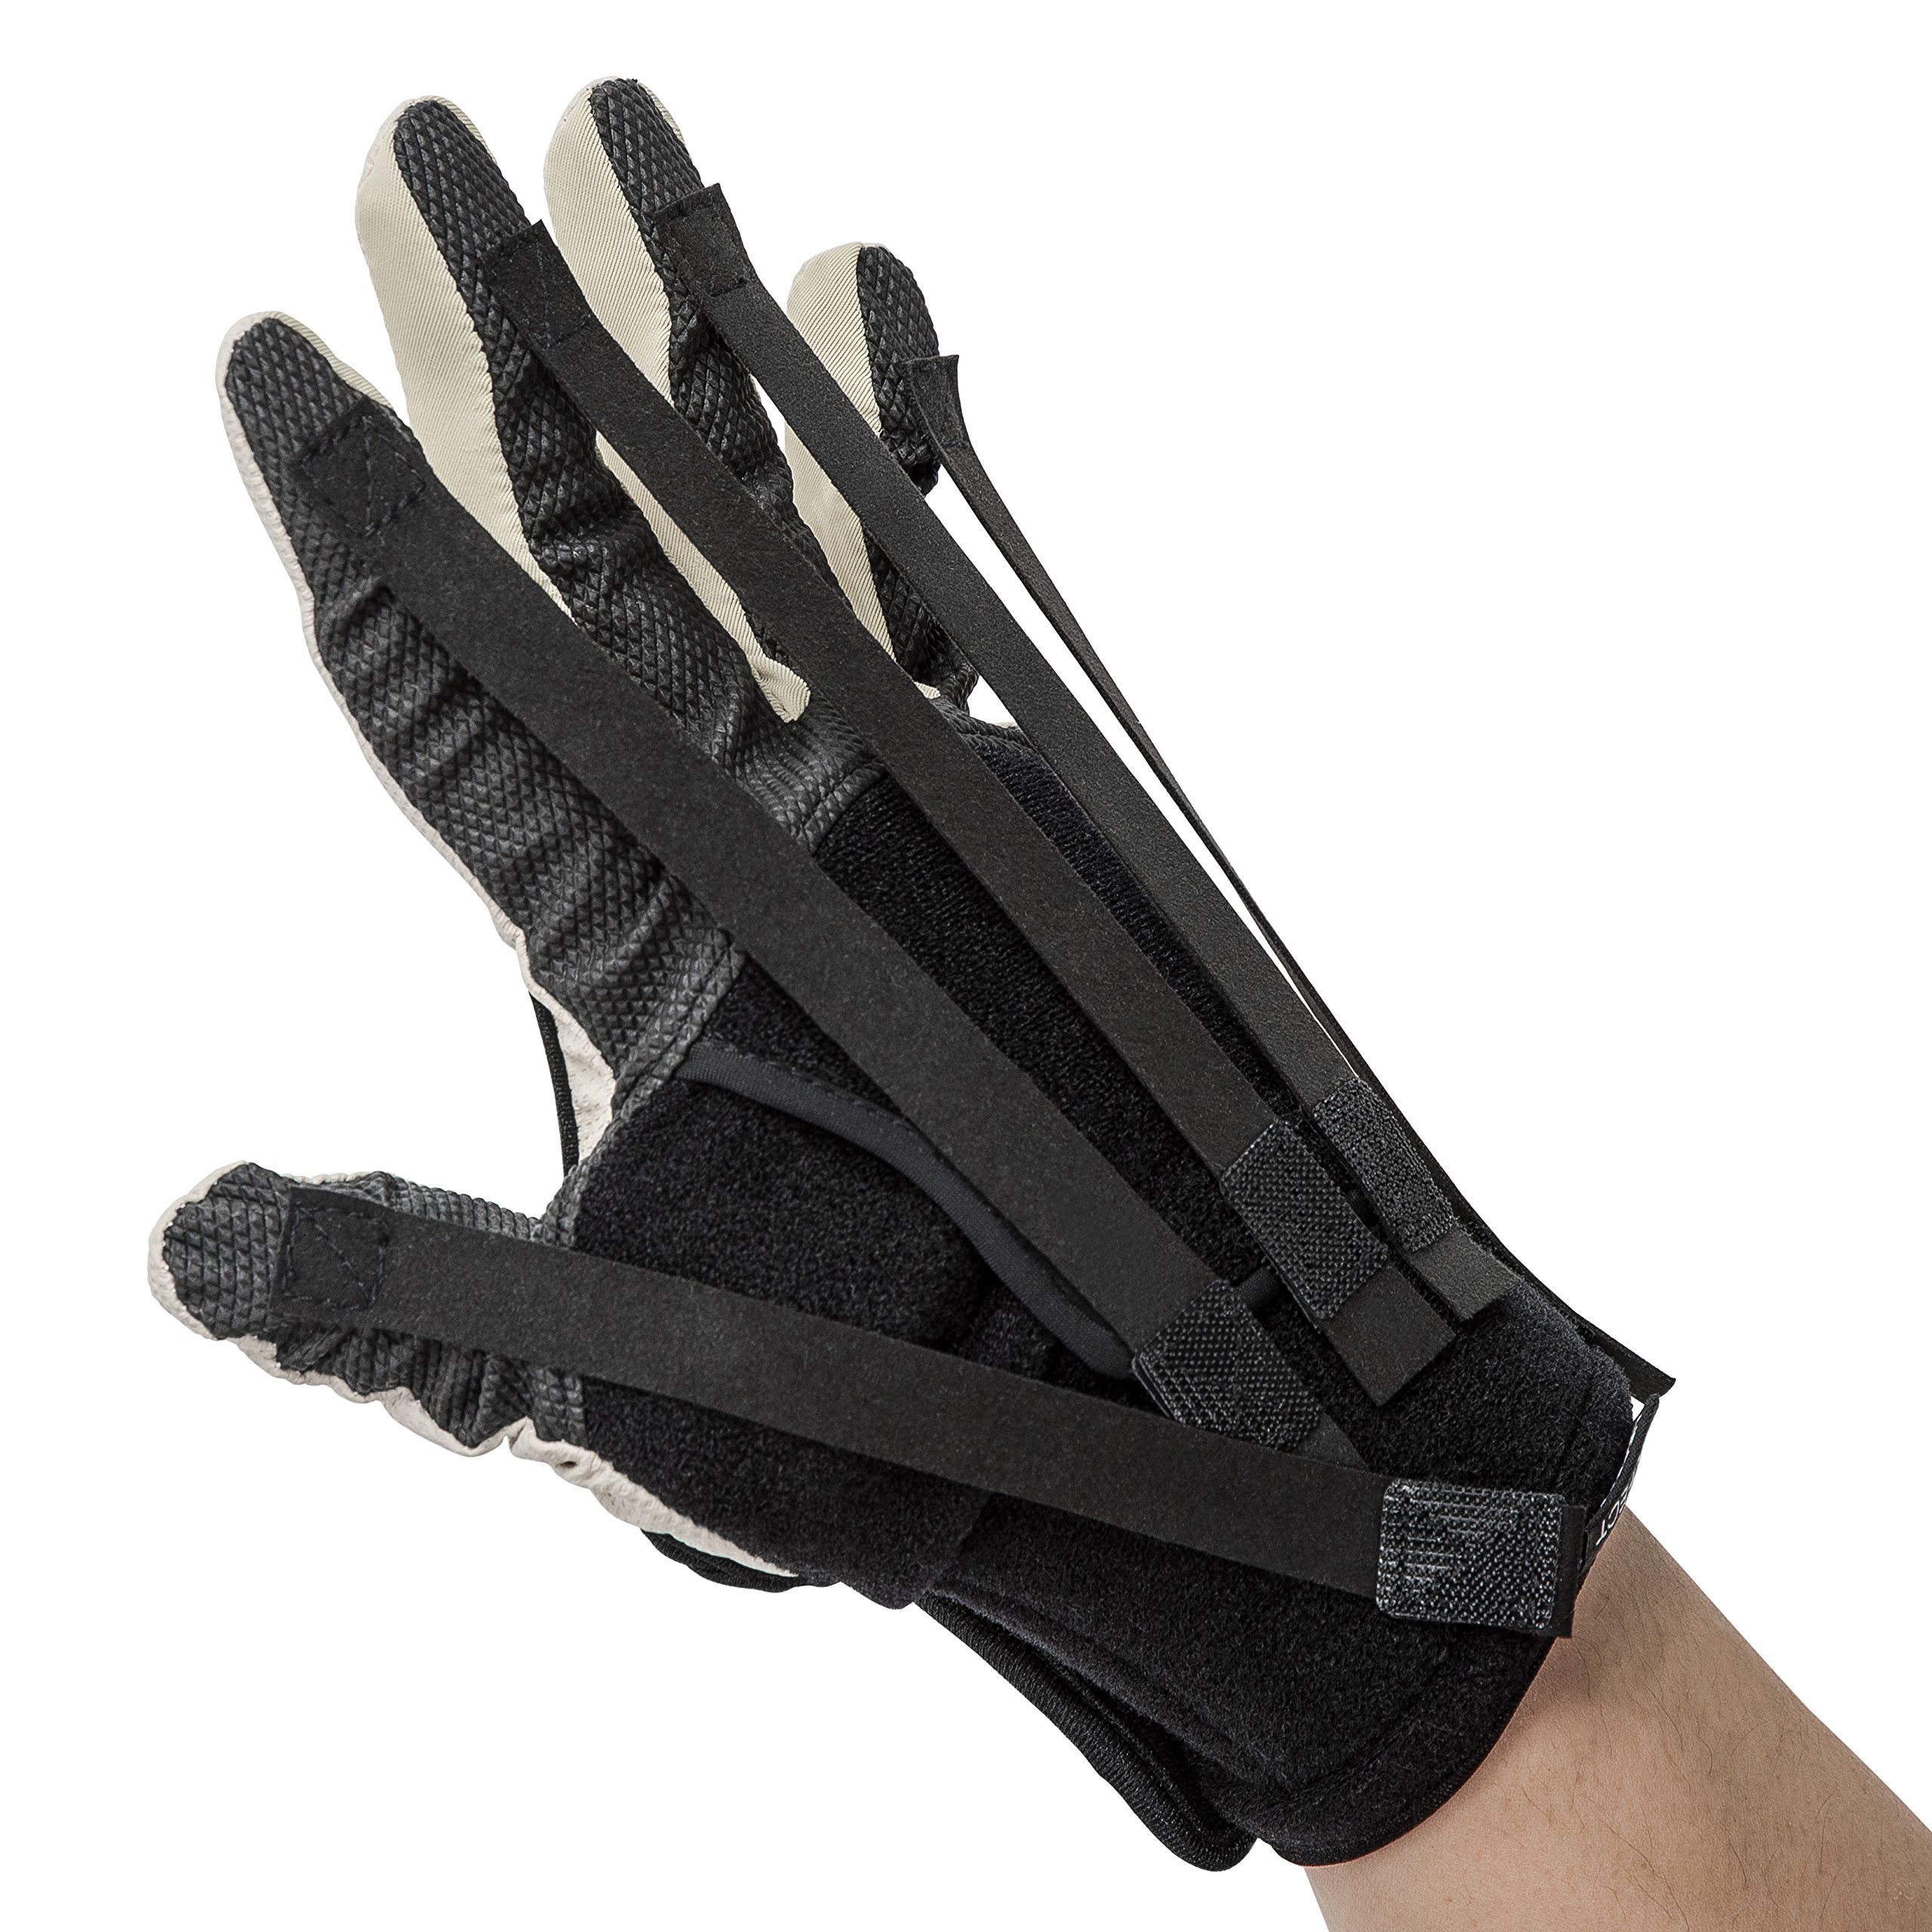 NEOFECT Extender - Minimizes Spasticity, Maintains Stretch & Functional Grasp, Prevents Stiffness for Stroke, TBI, Increased Muscle Tone, Hand Glove (Medium, Right) by NEOFECT